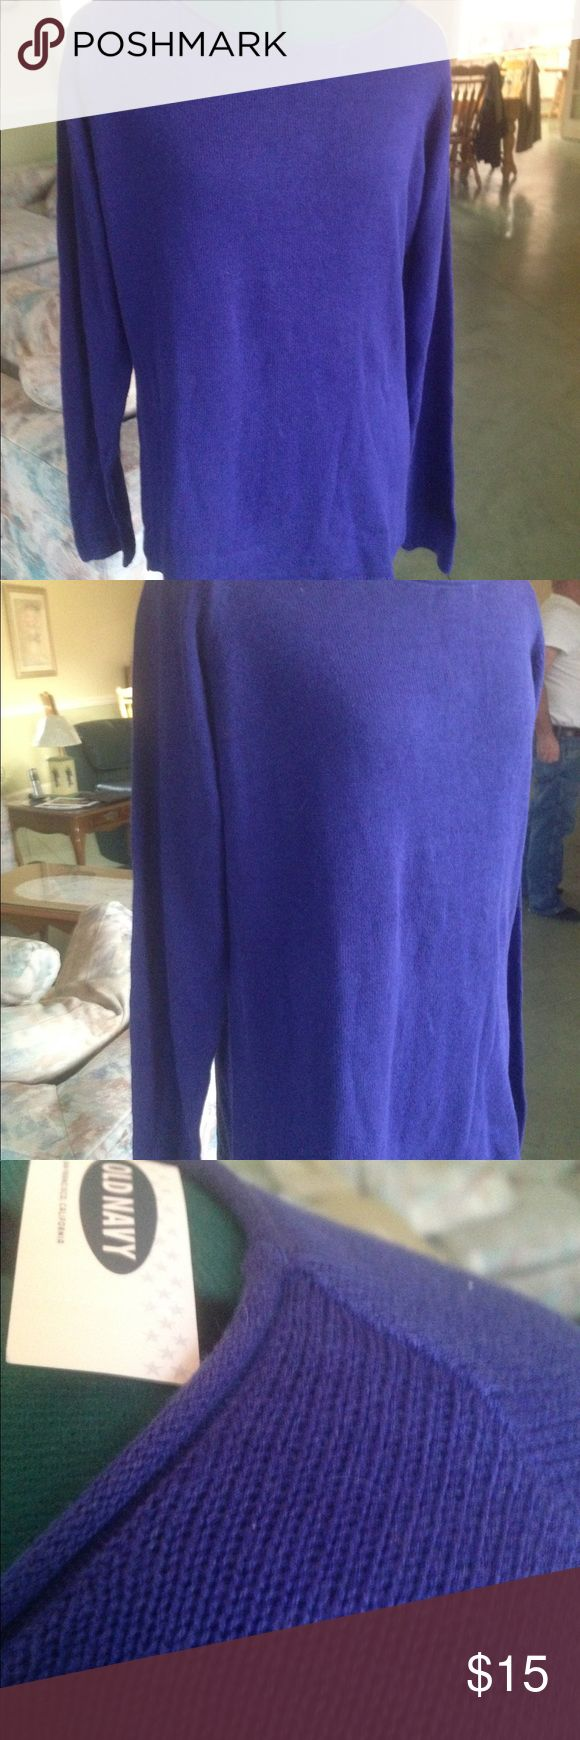 Blue Old Navy Sweater NWT New with tags. Old Navy medium  blue sweater Never worn. Size XL Old Navy Sweaters Crew & Scoop Necks